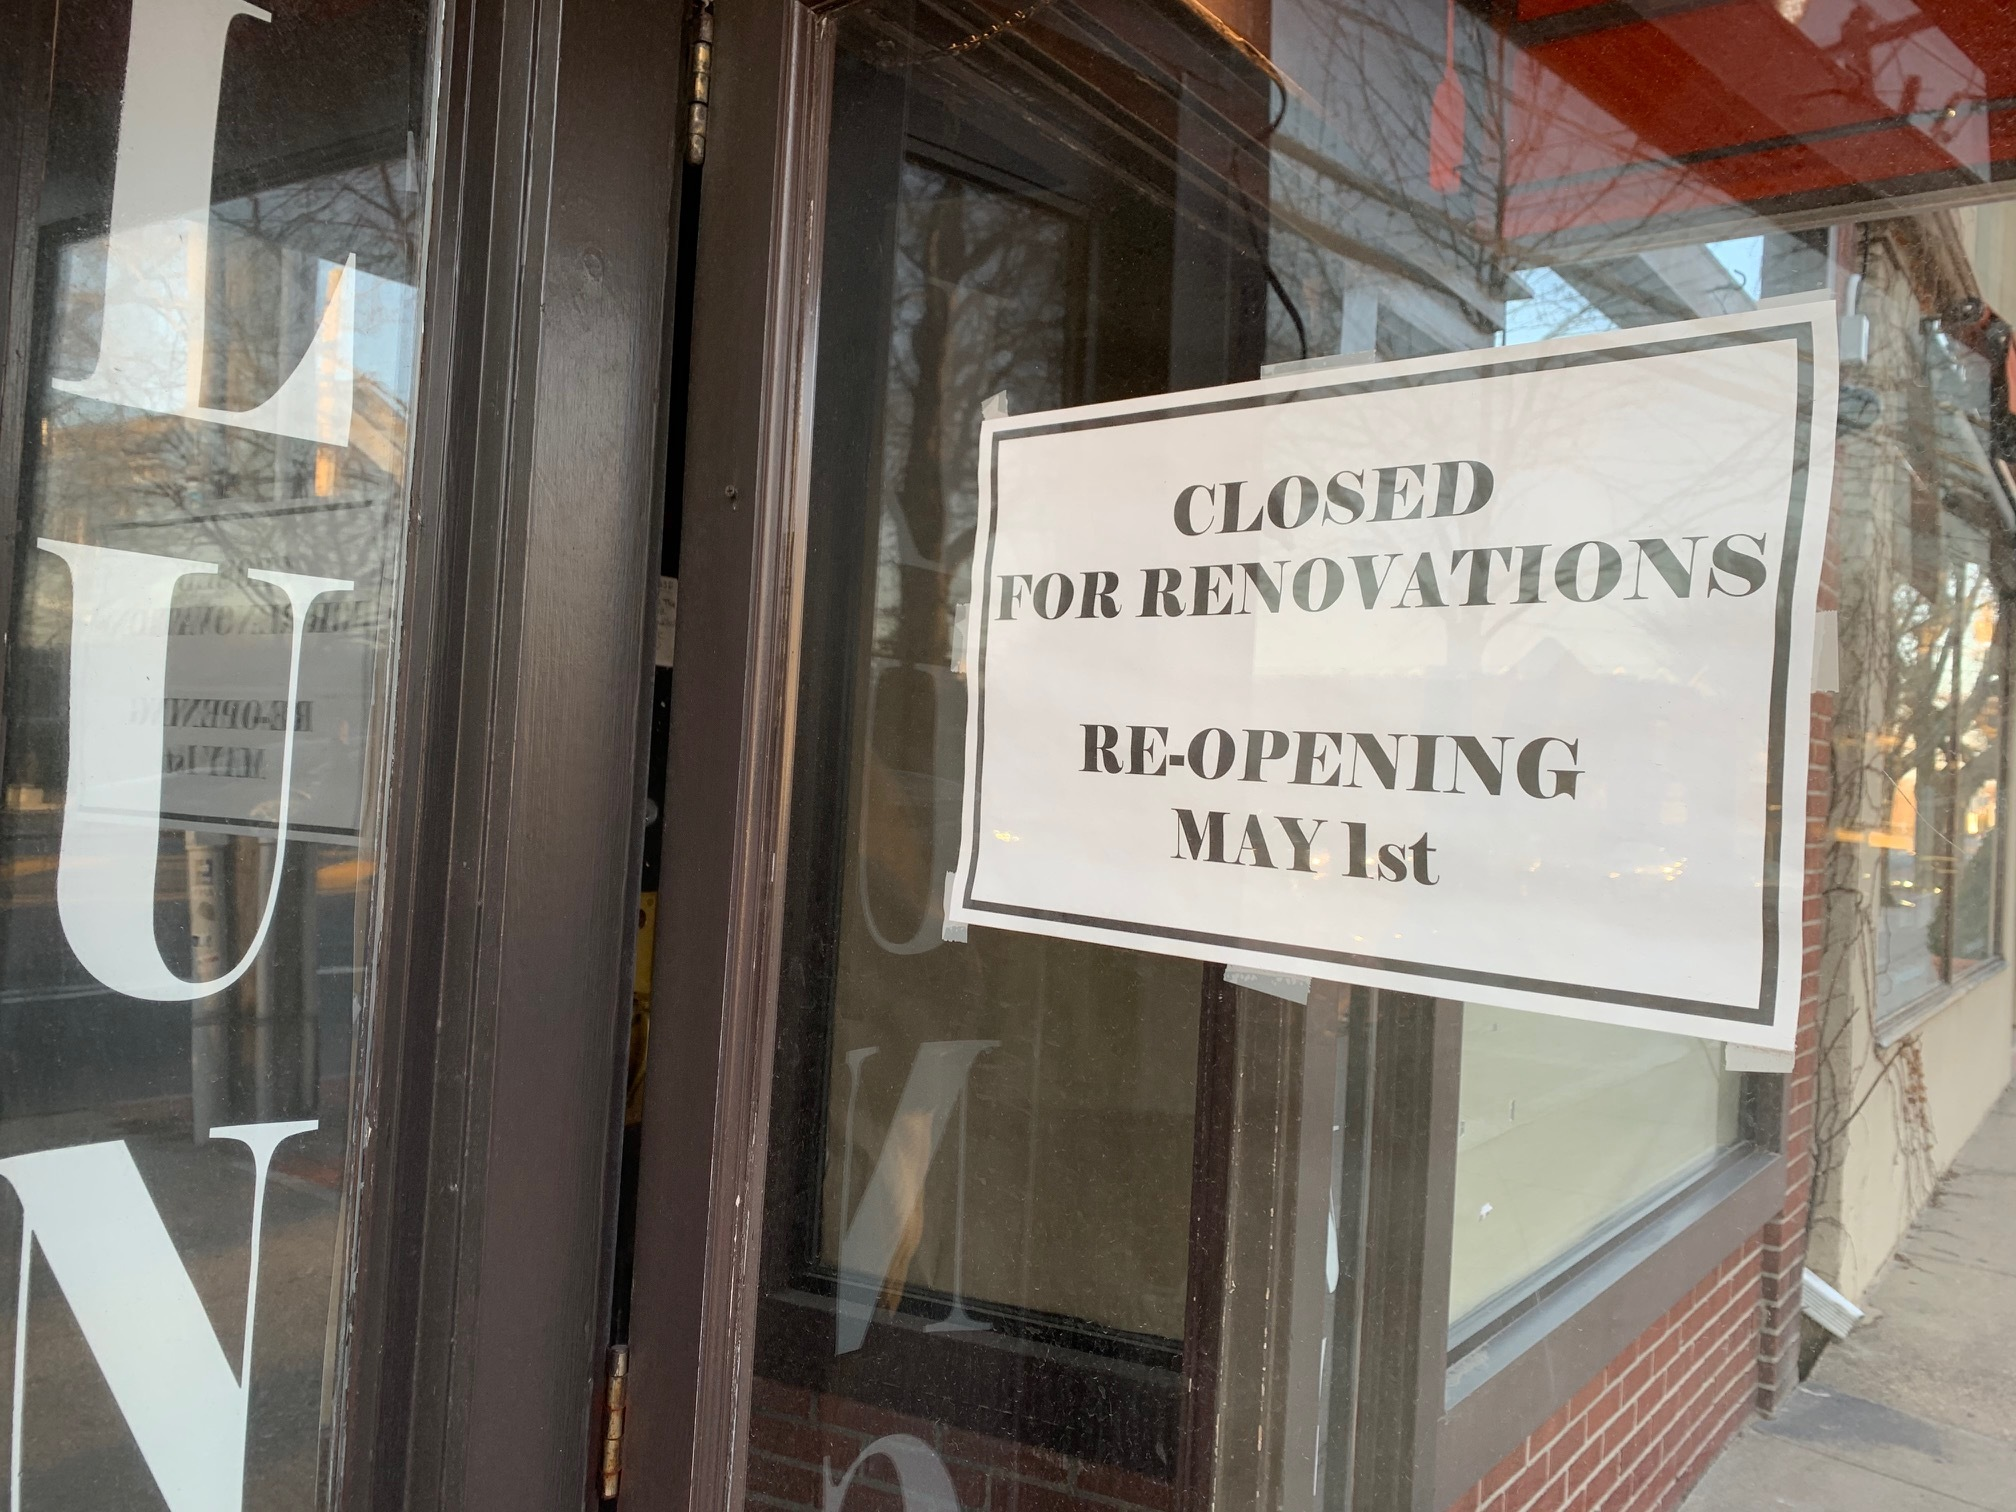 World Pie in Bridgehampton is closed for renovations.